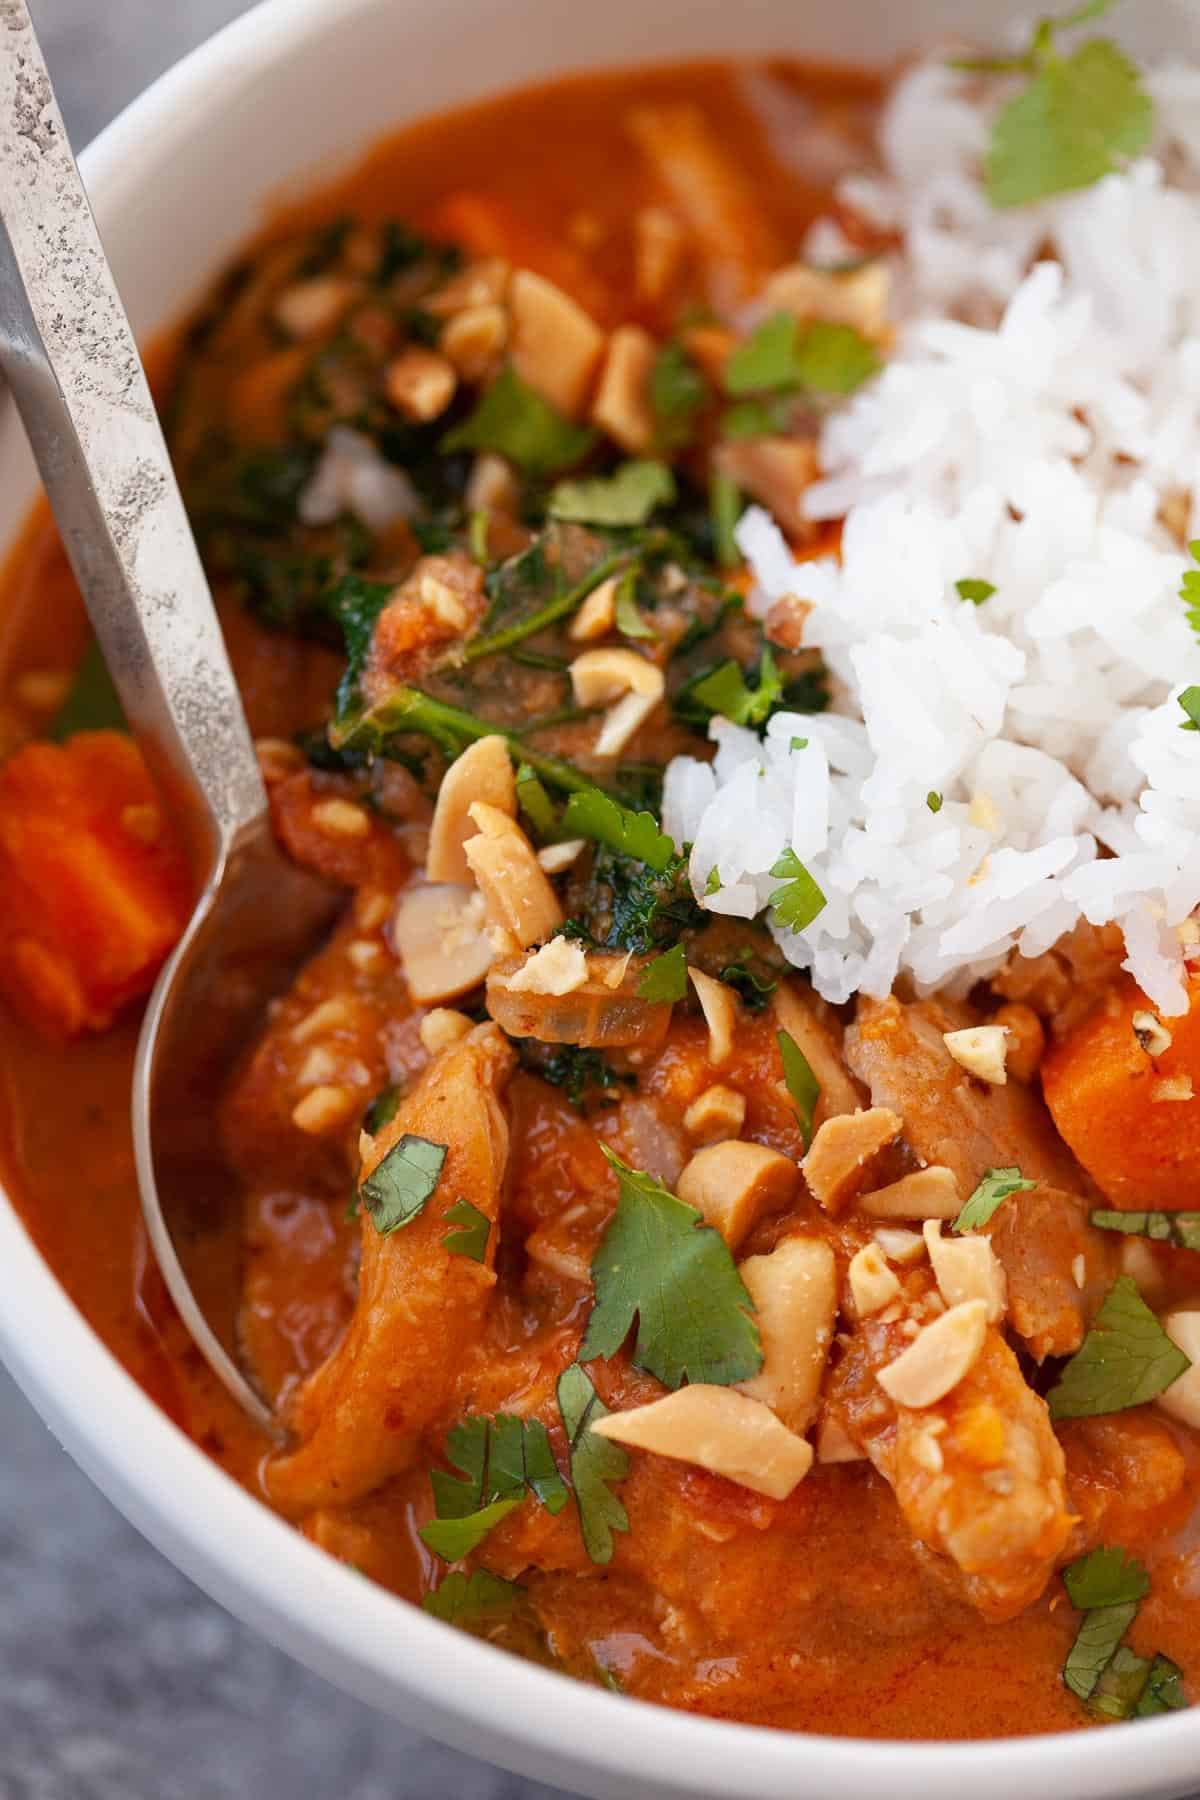 West African Peanut Stew with Chicken